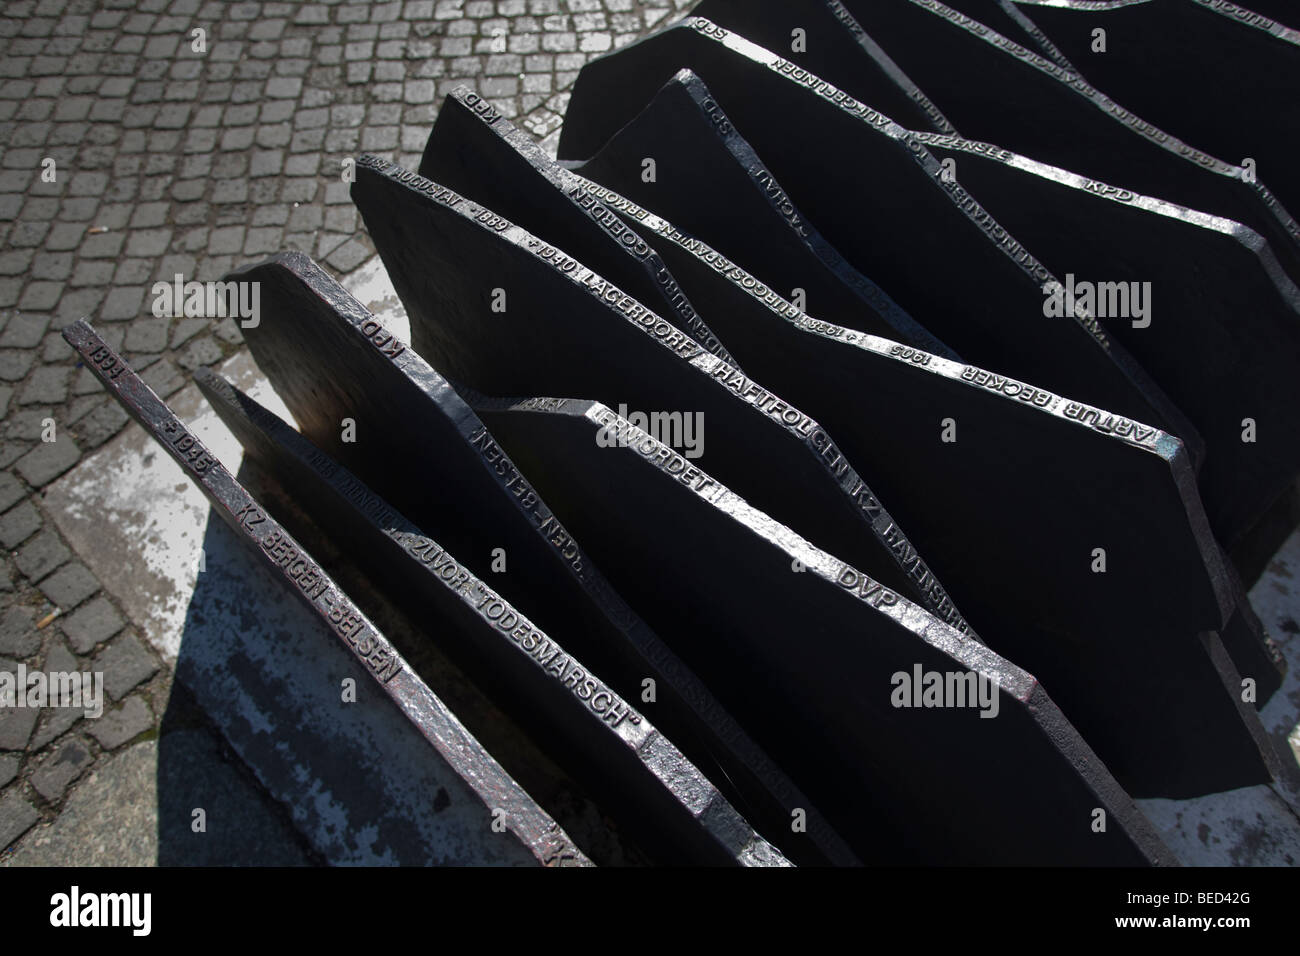 Berlin - memorial to Members of Parliament murdered by Nazis opposite the Reichstag parliament building - Stock Image